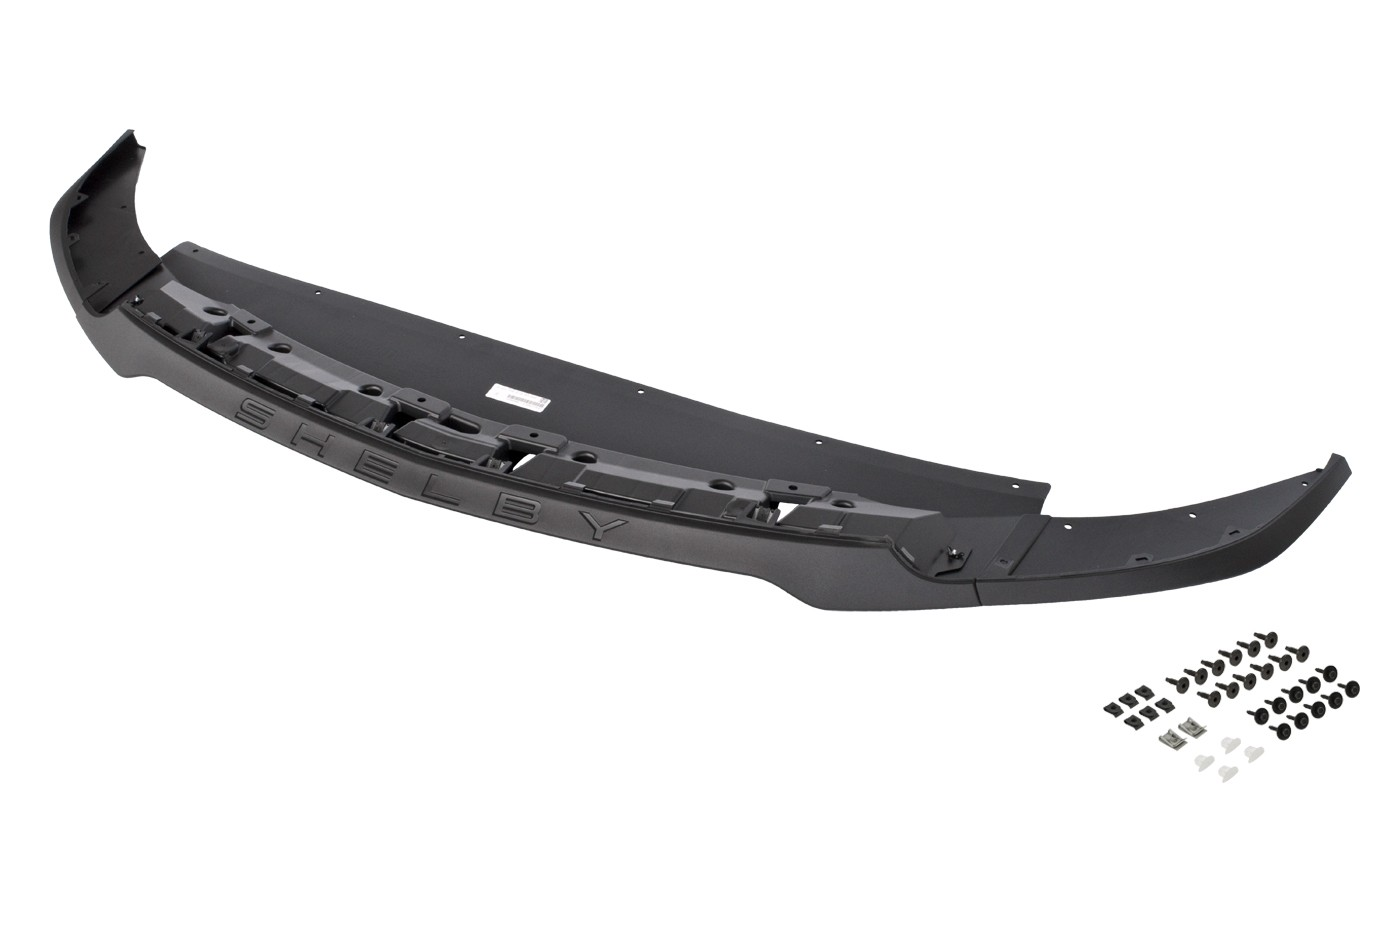 2016-2019 Mustang Shelby GT350 Genuine Ford Front Bumper